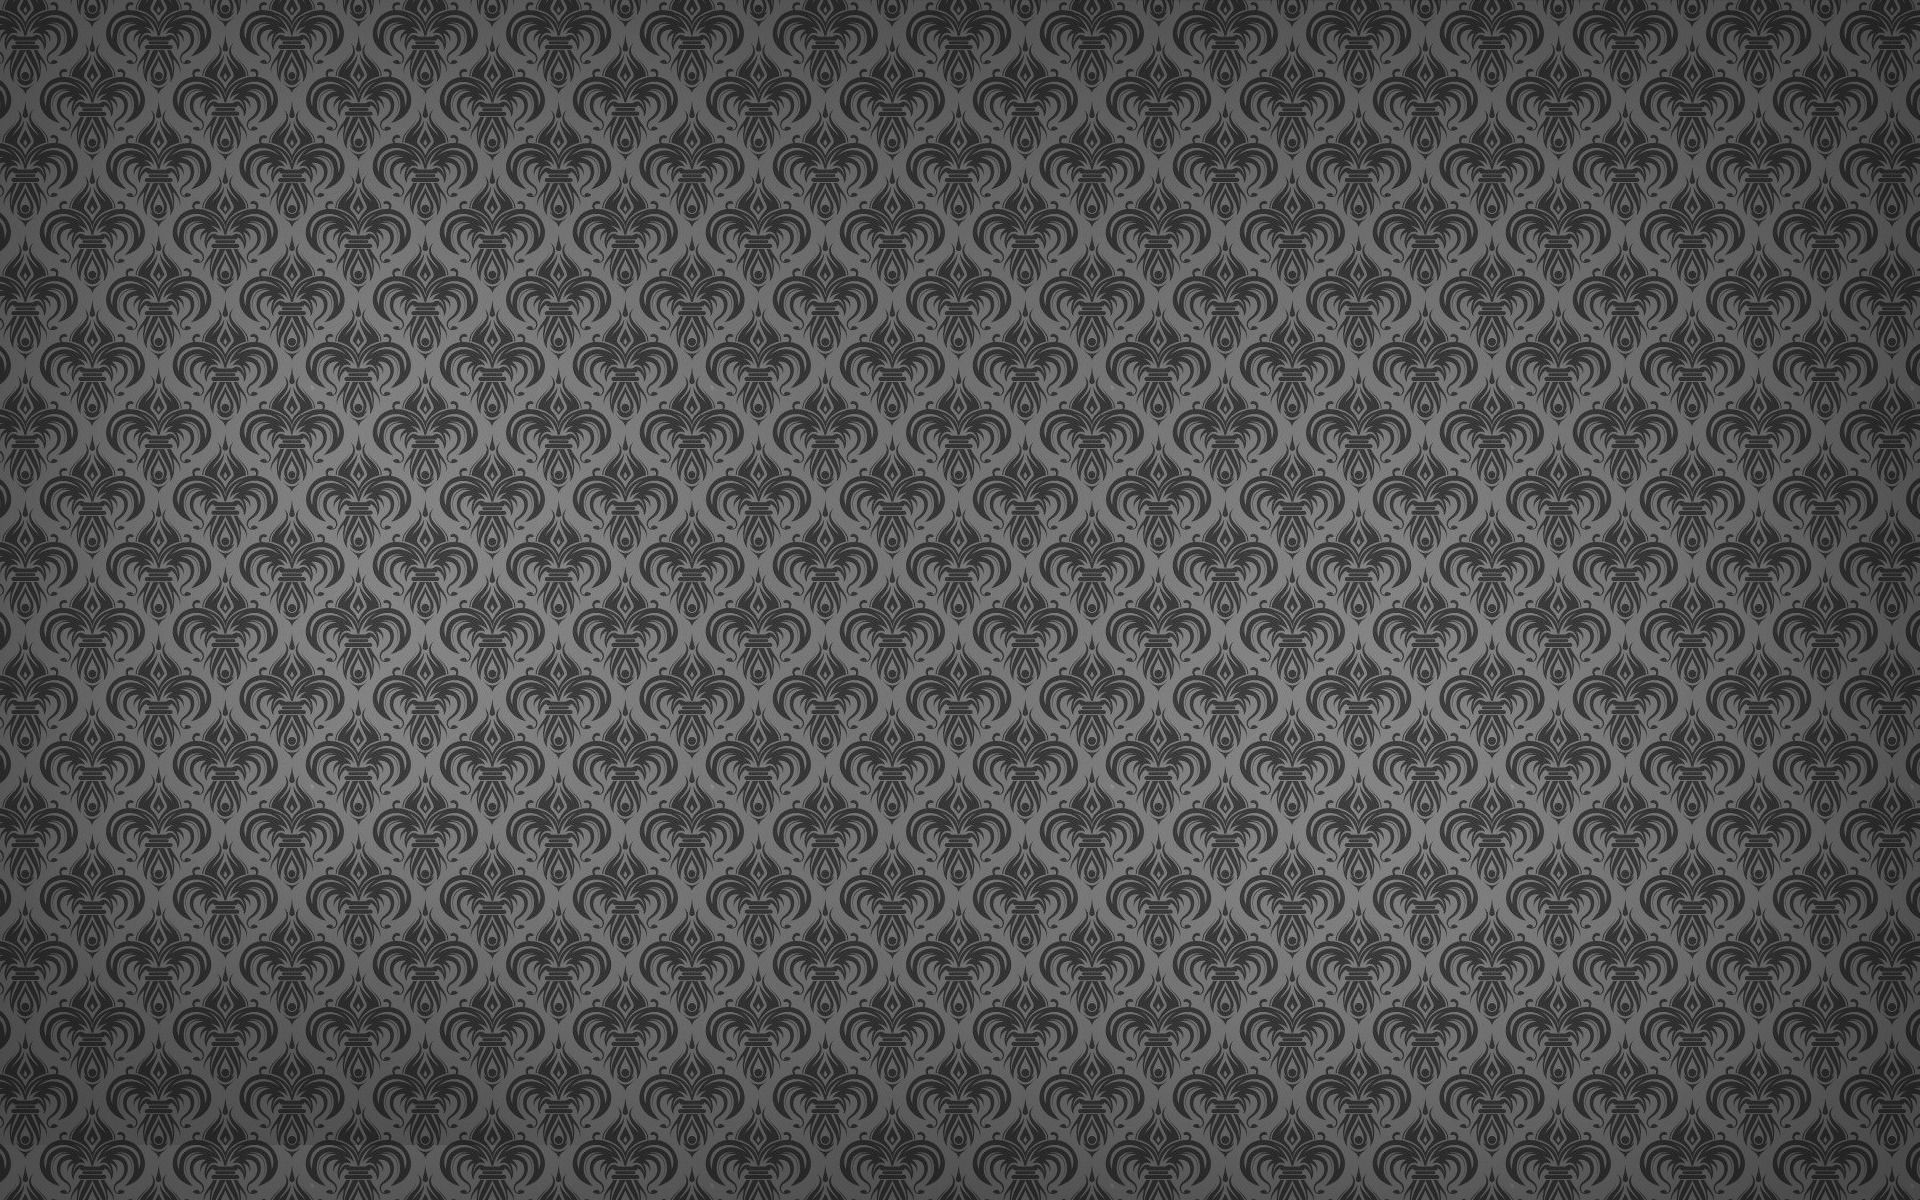 grey backgrounds marketing wallpaper 63 images